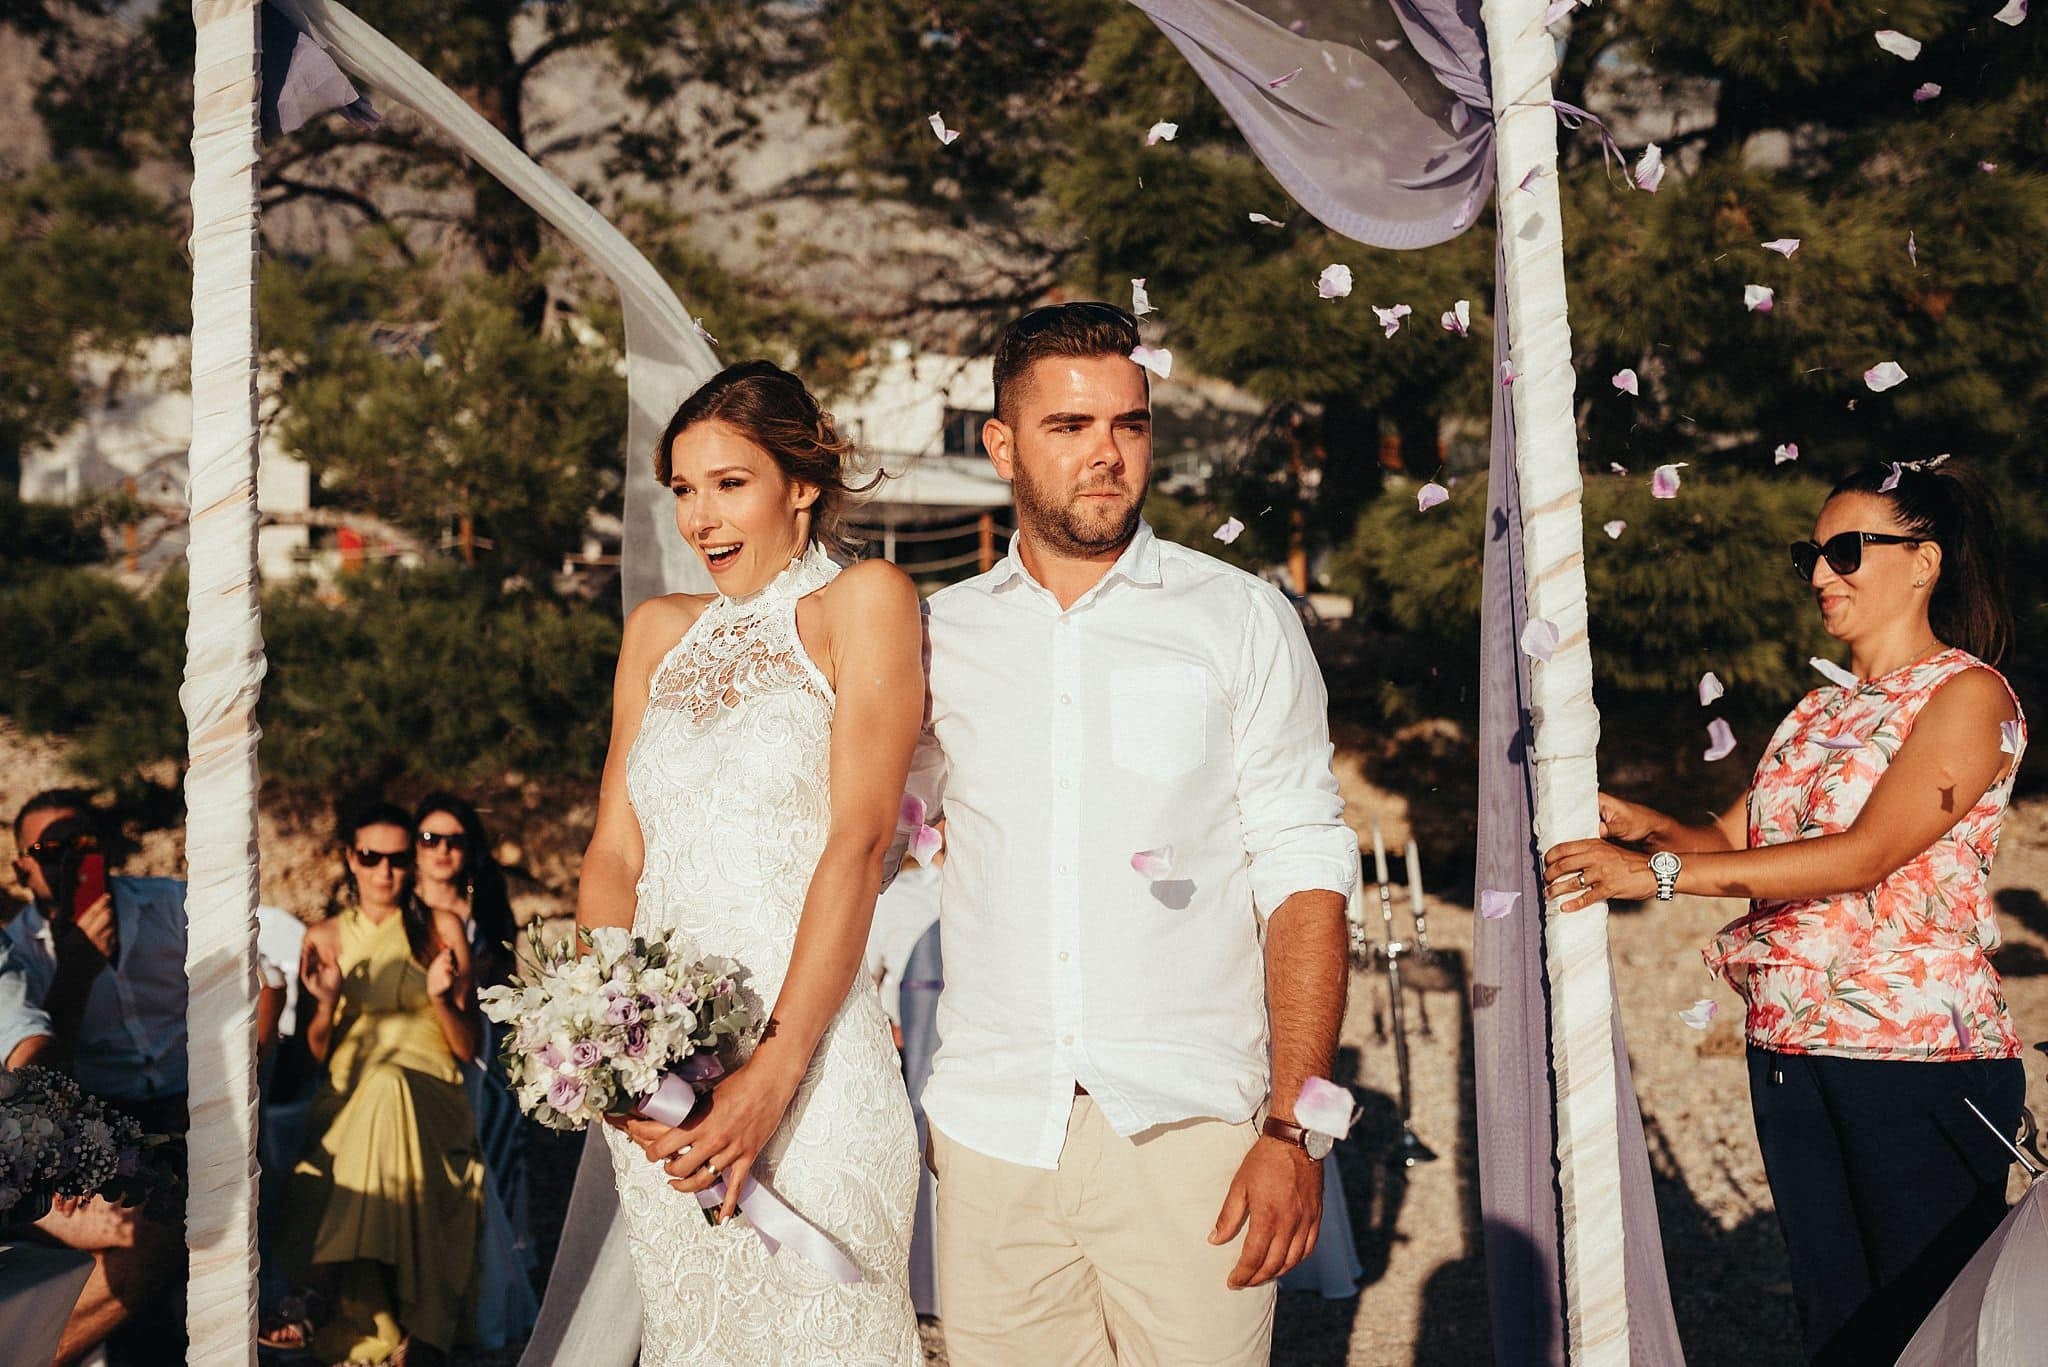 makarska wedding photographer croatia 018 - Dalmatia Wedding Photographer | Adrienn & Attila